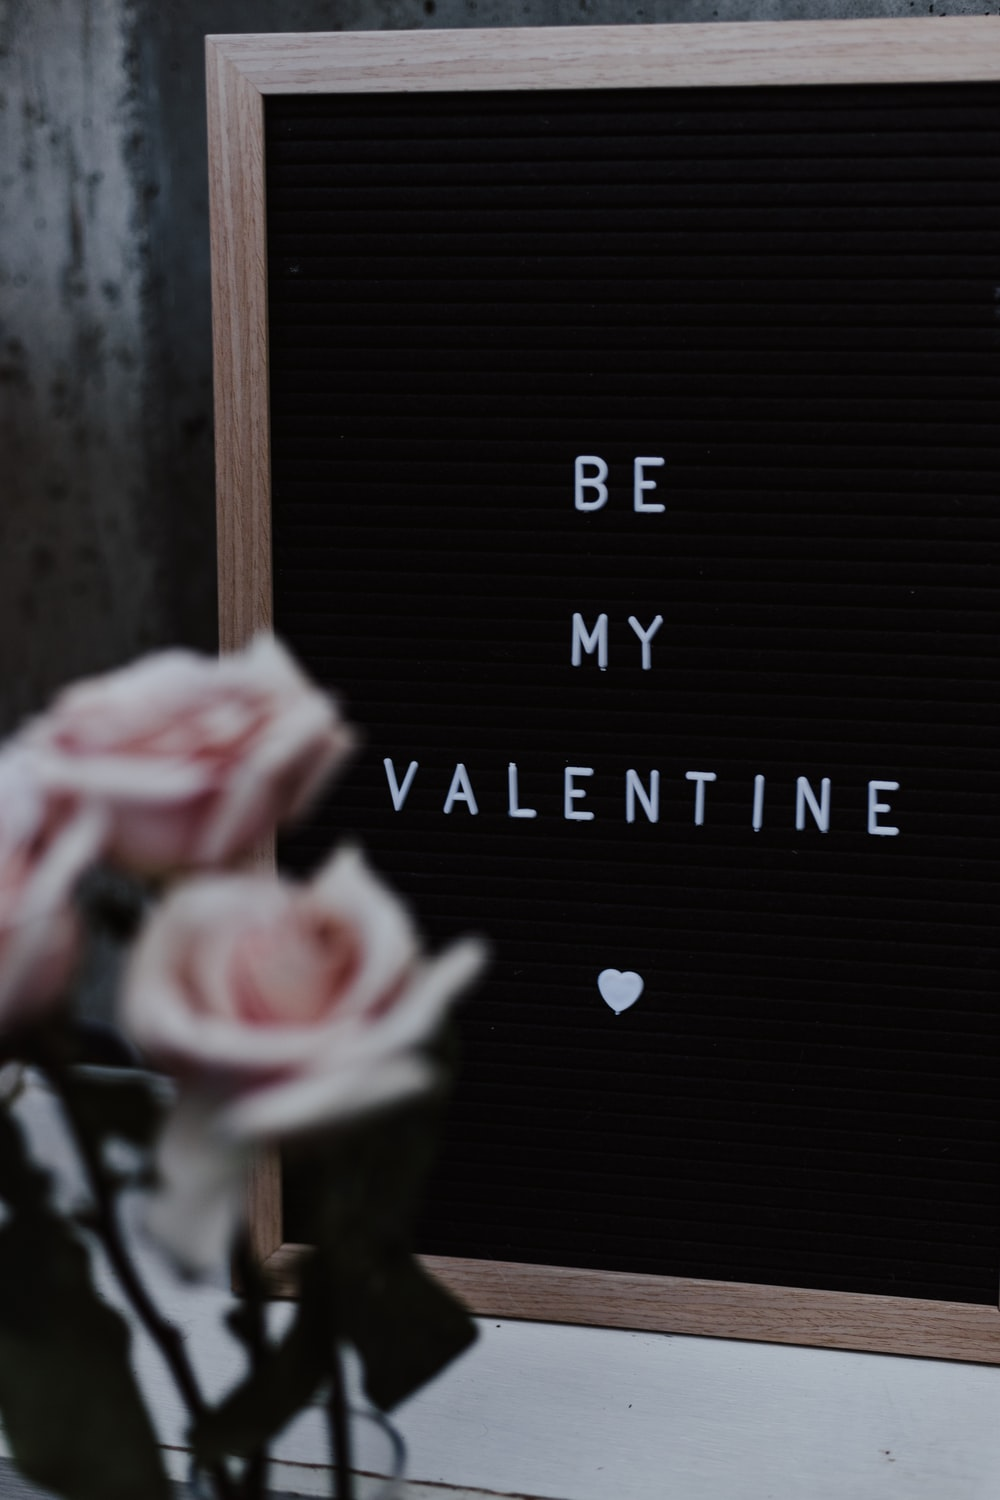 Be my valentine board near pink roses